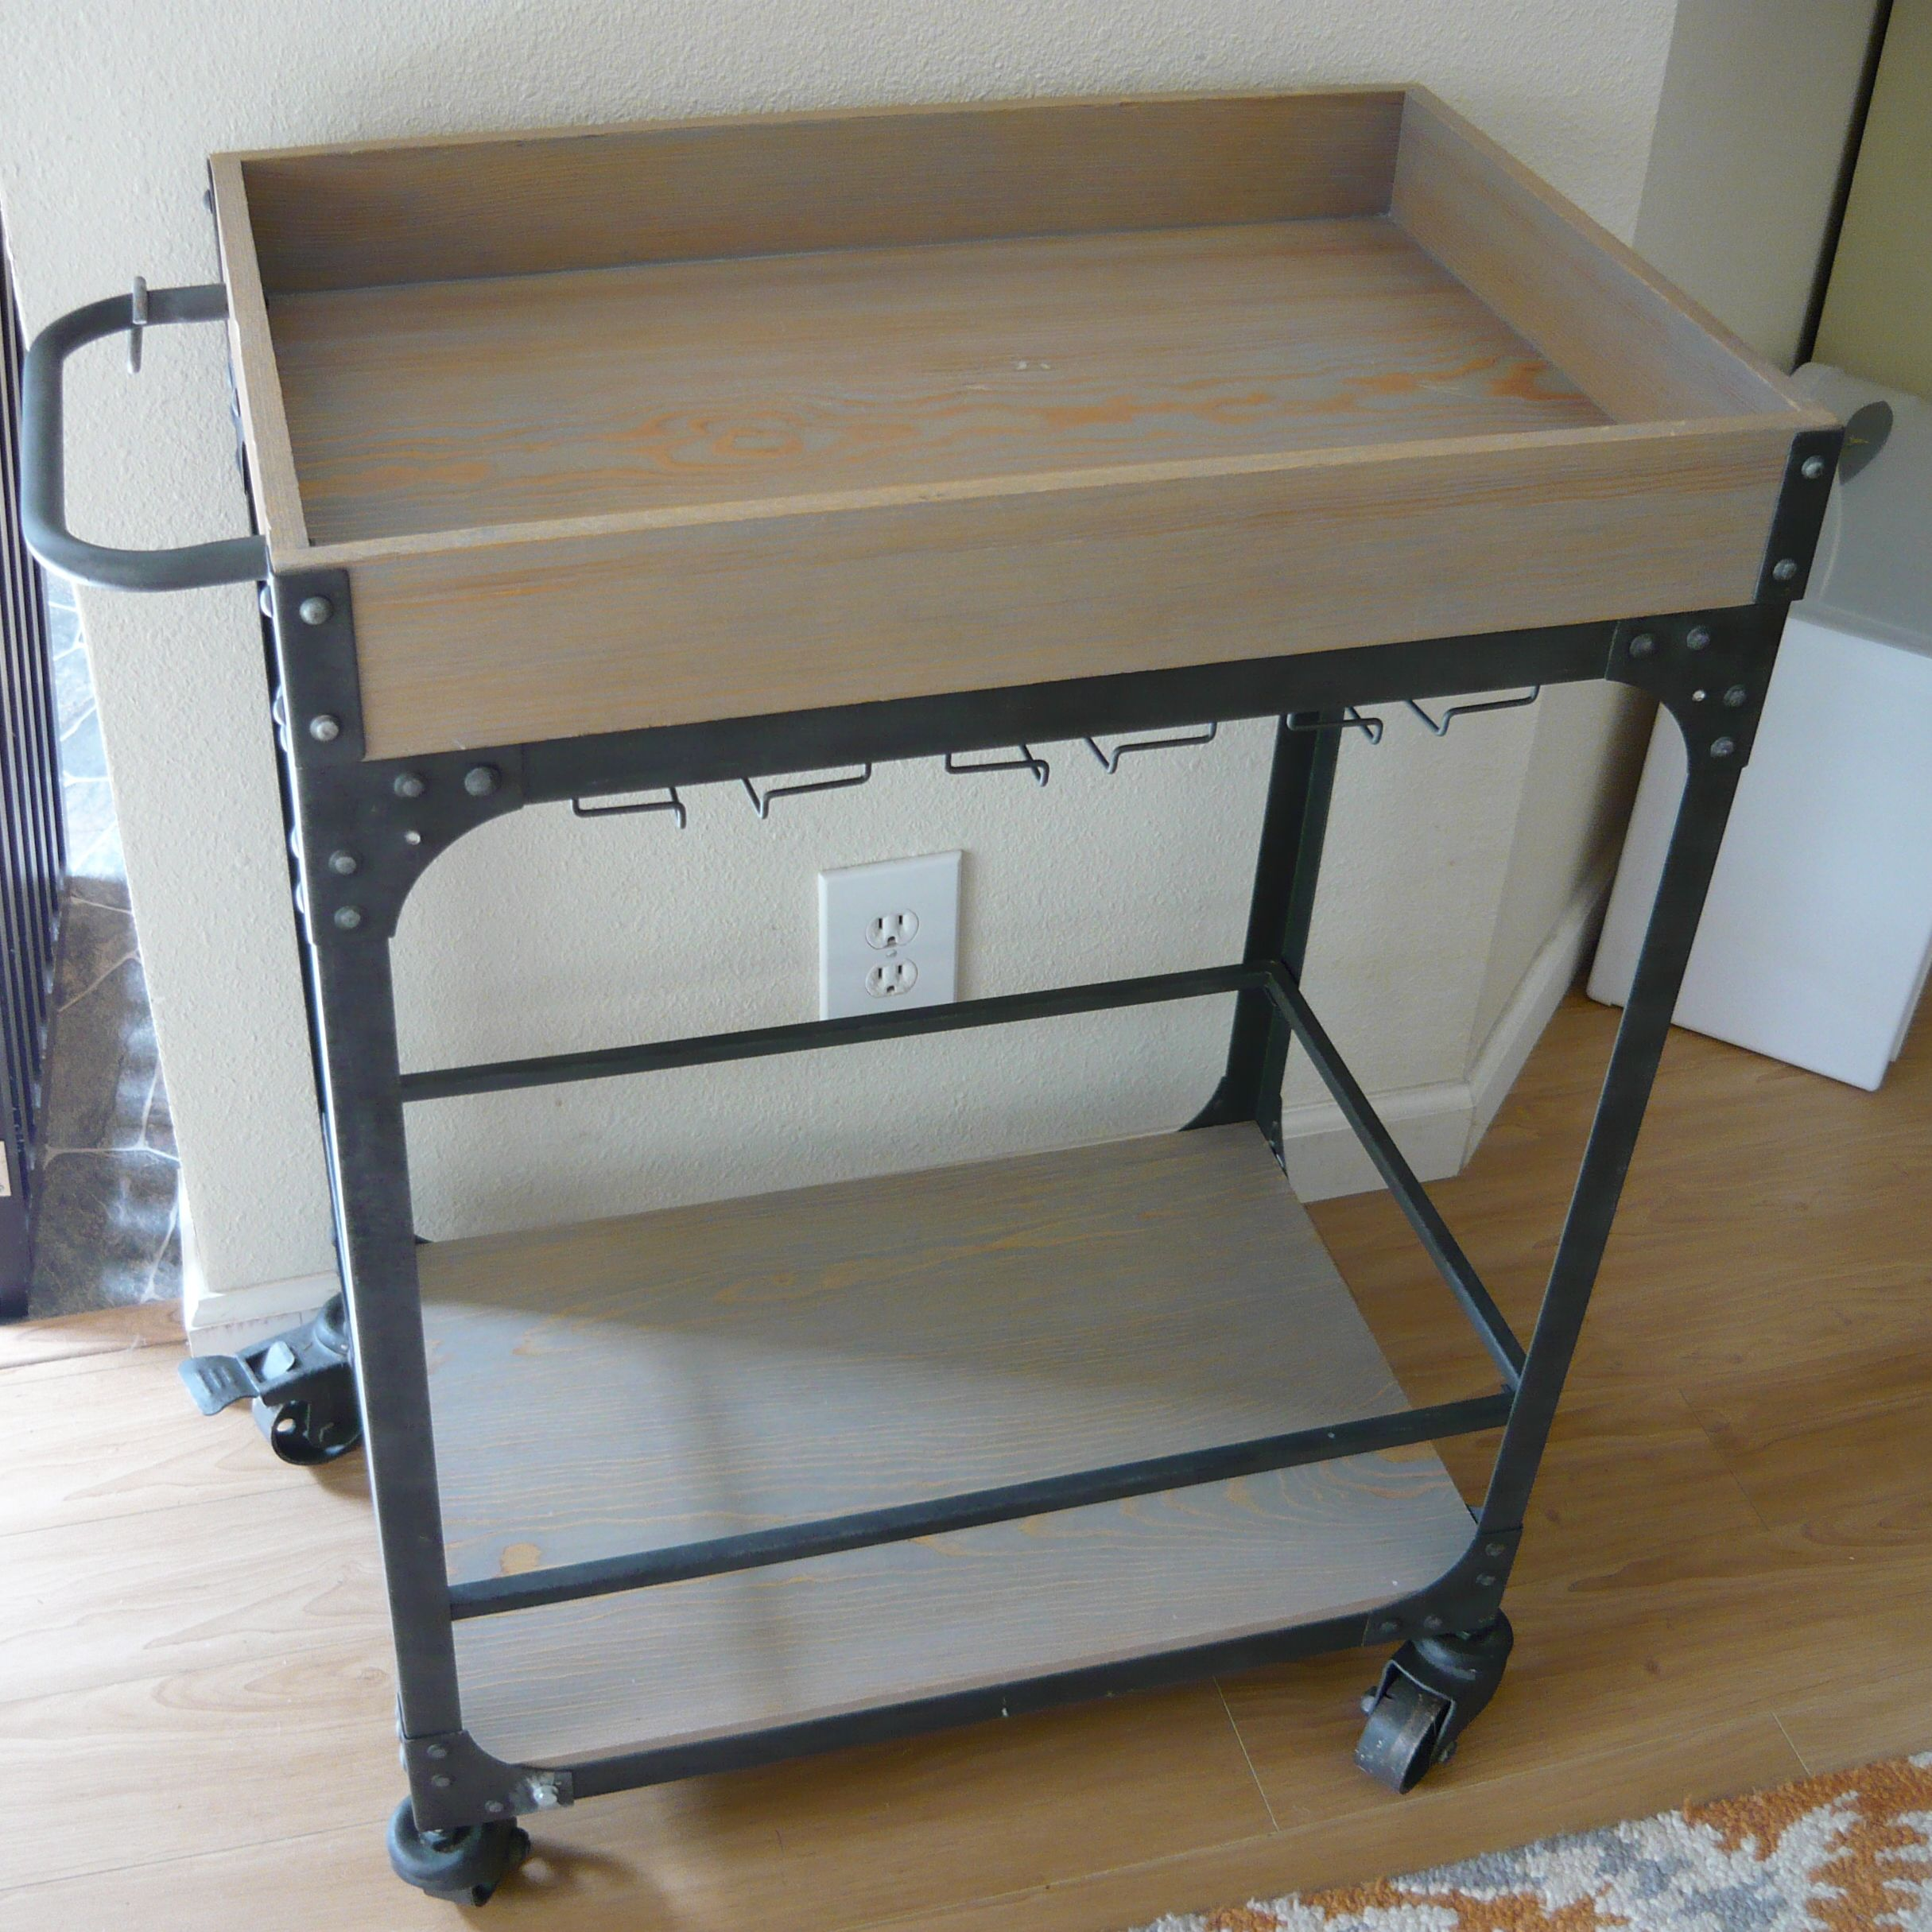 BAR CART with Glass' Rack $40 Retails at $128 image 1